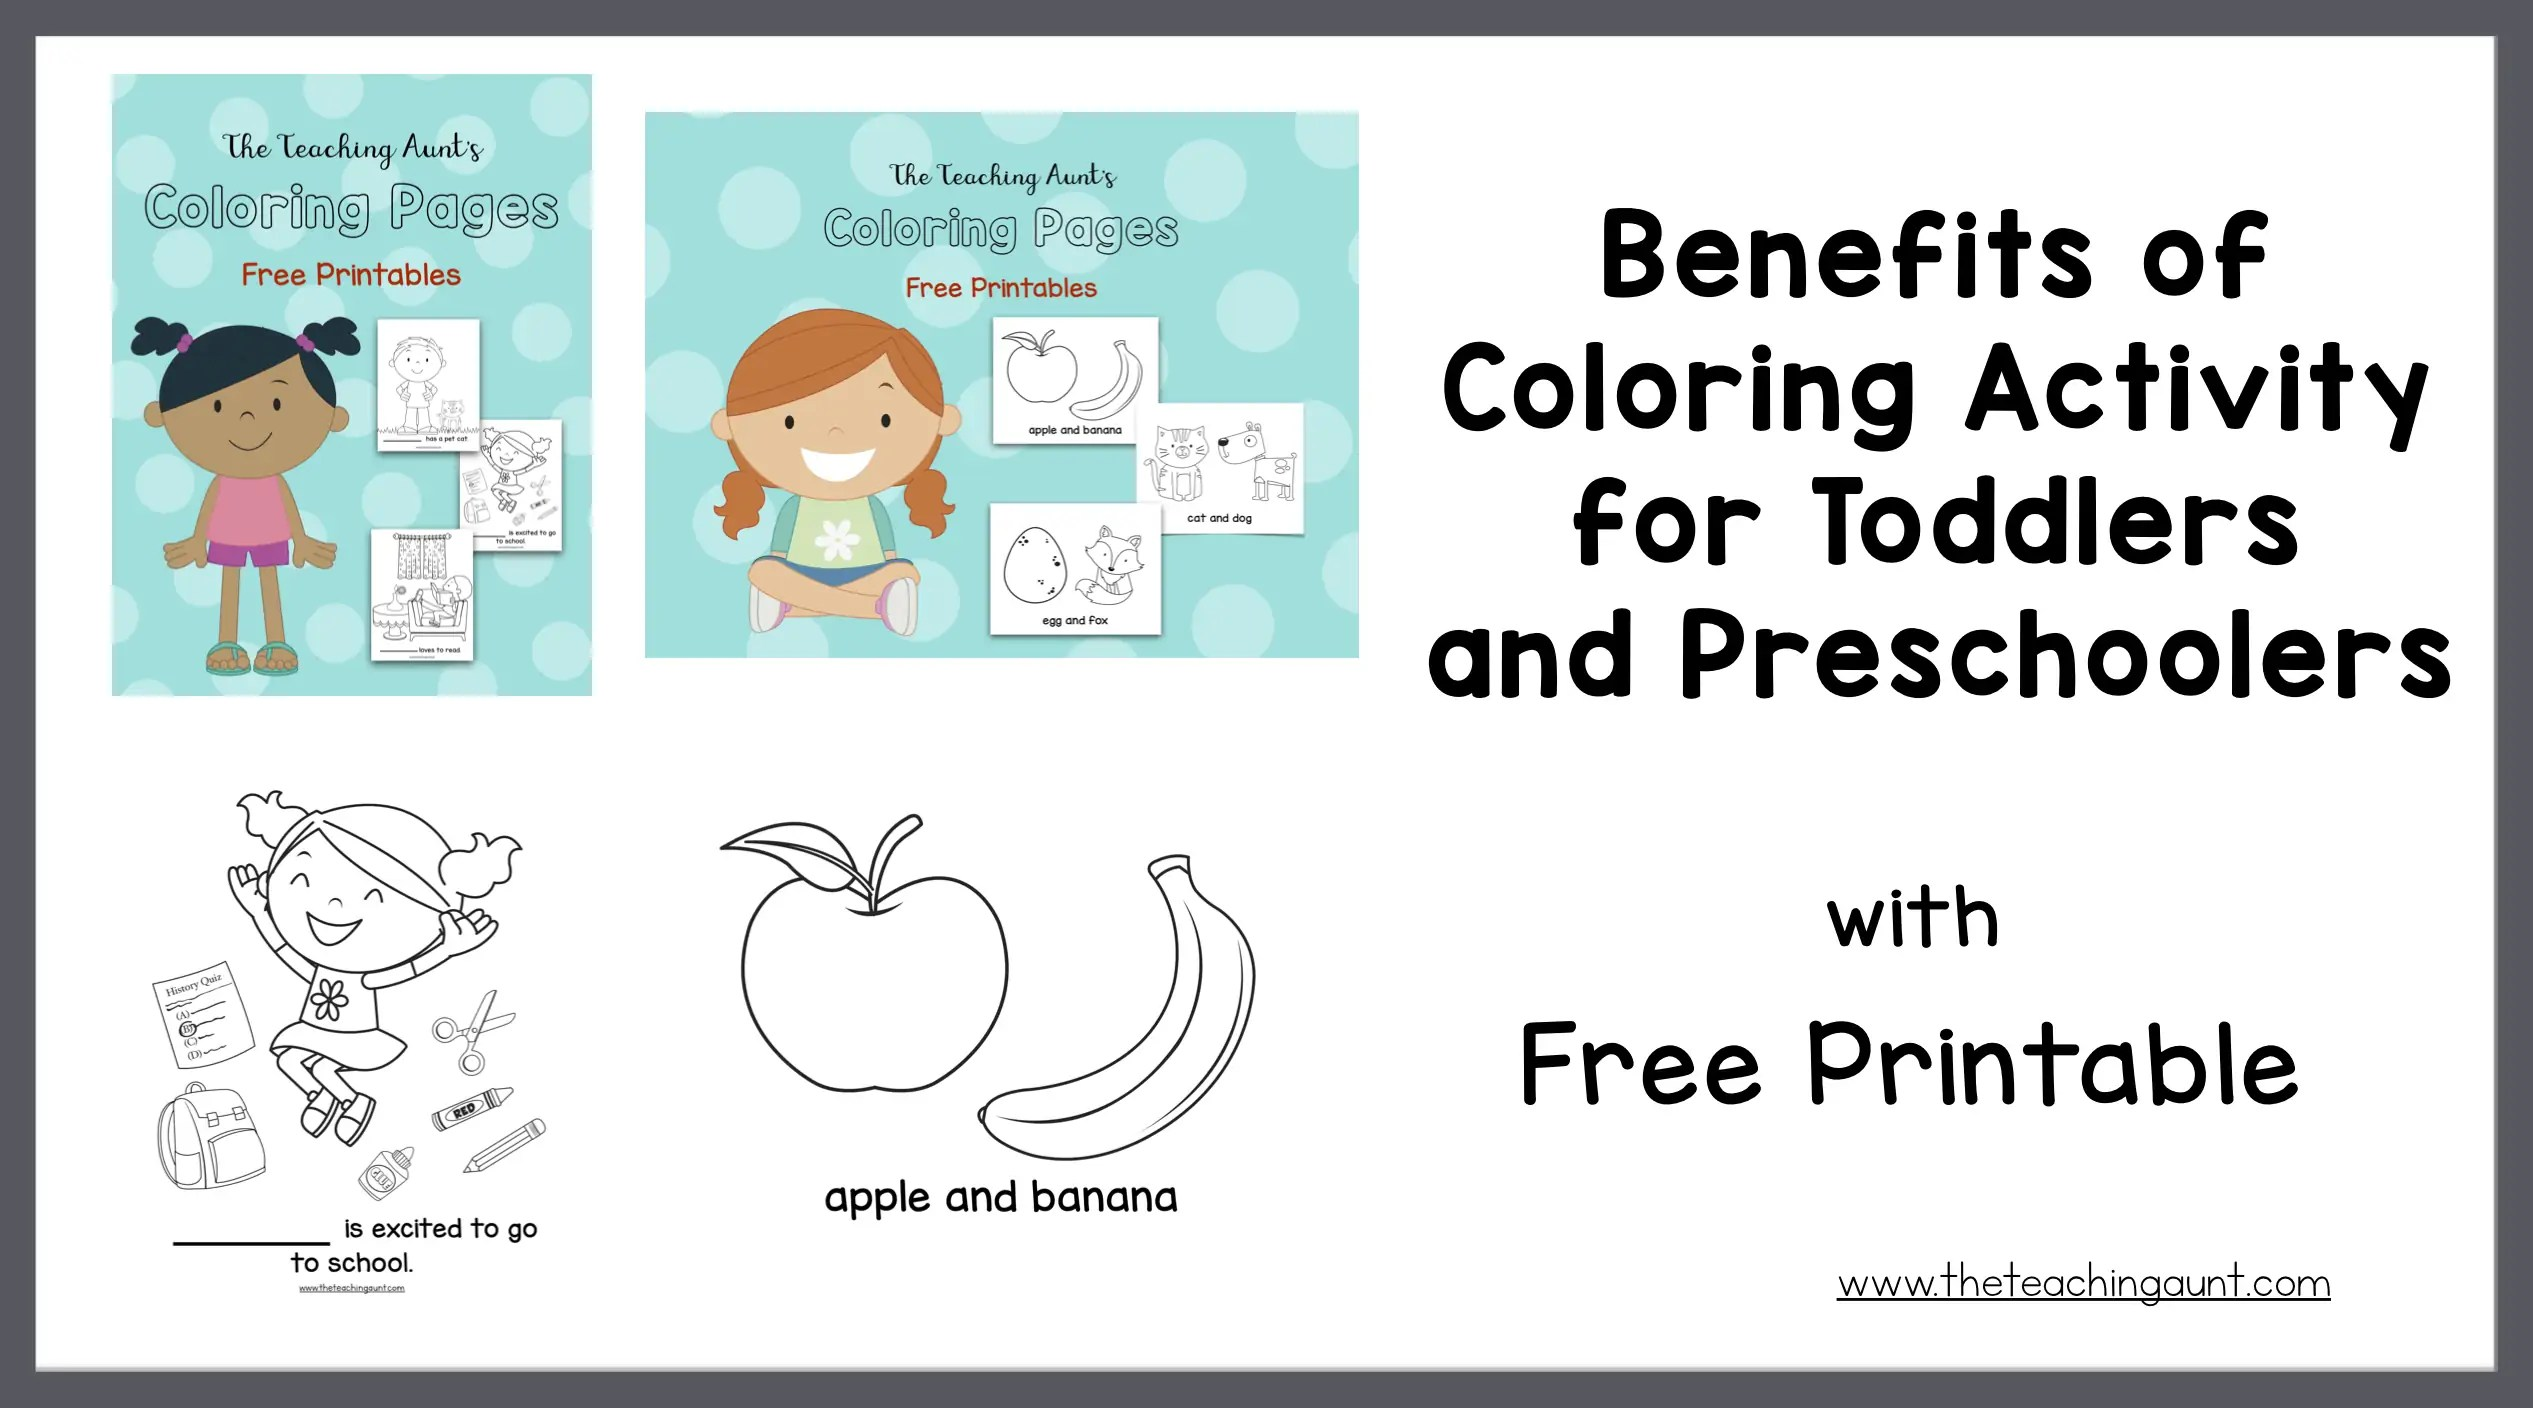 - Benefits Of Coloring Activity For Toddlers And Preschoolers - The Teaching  Aunt